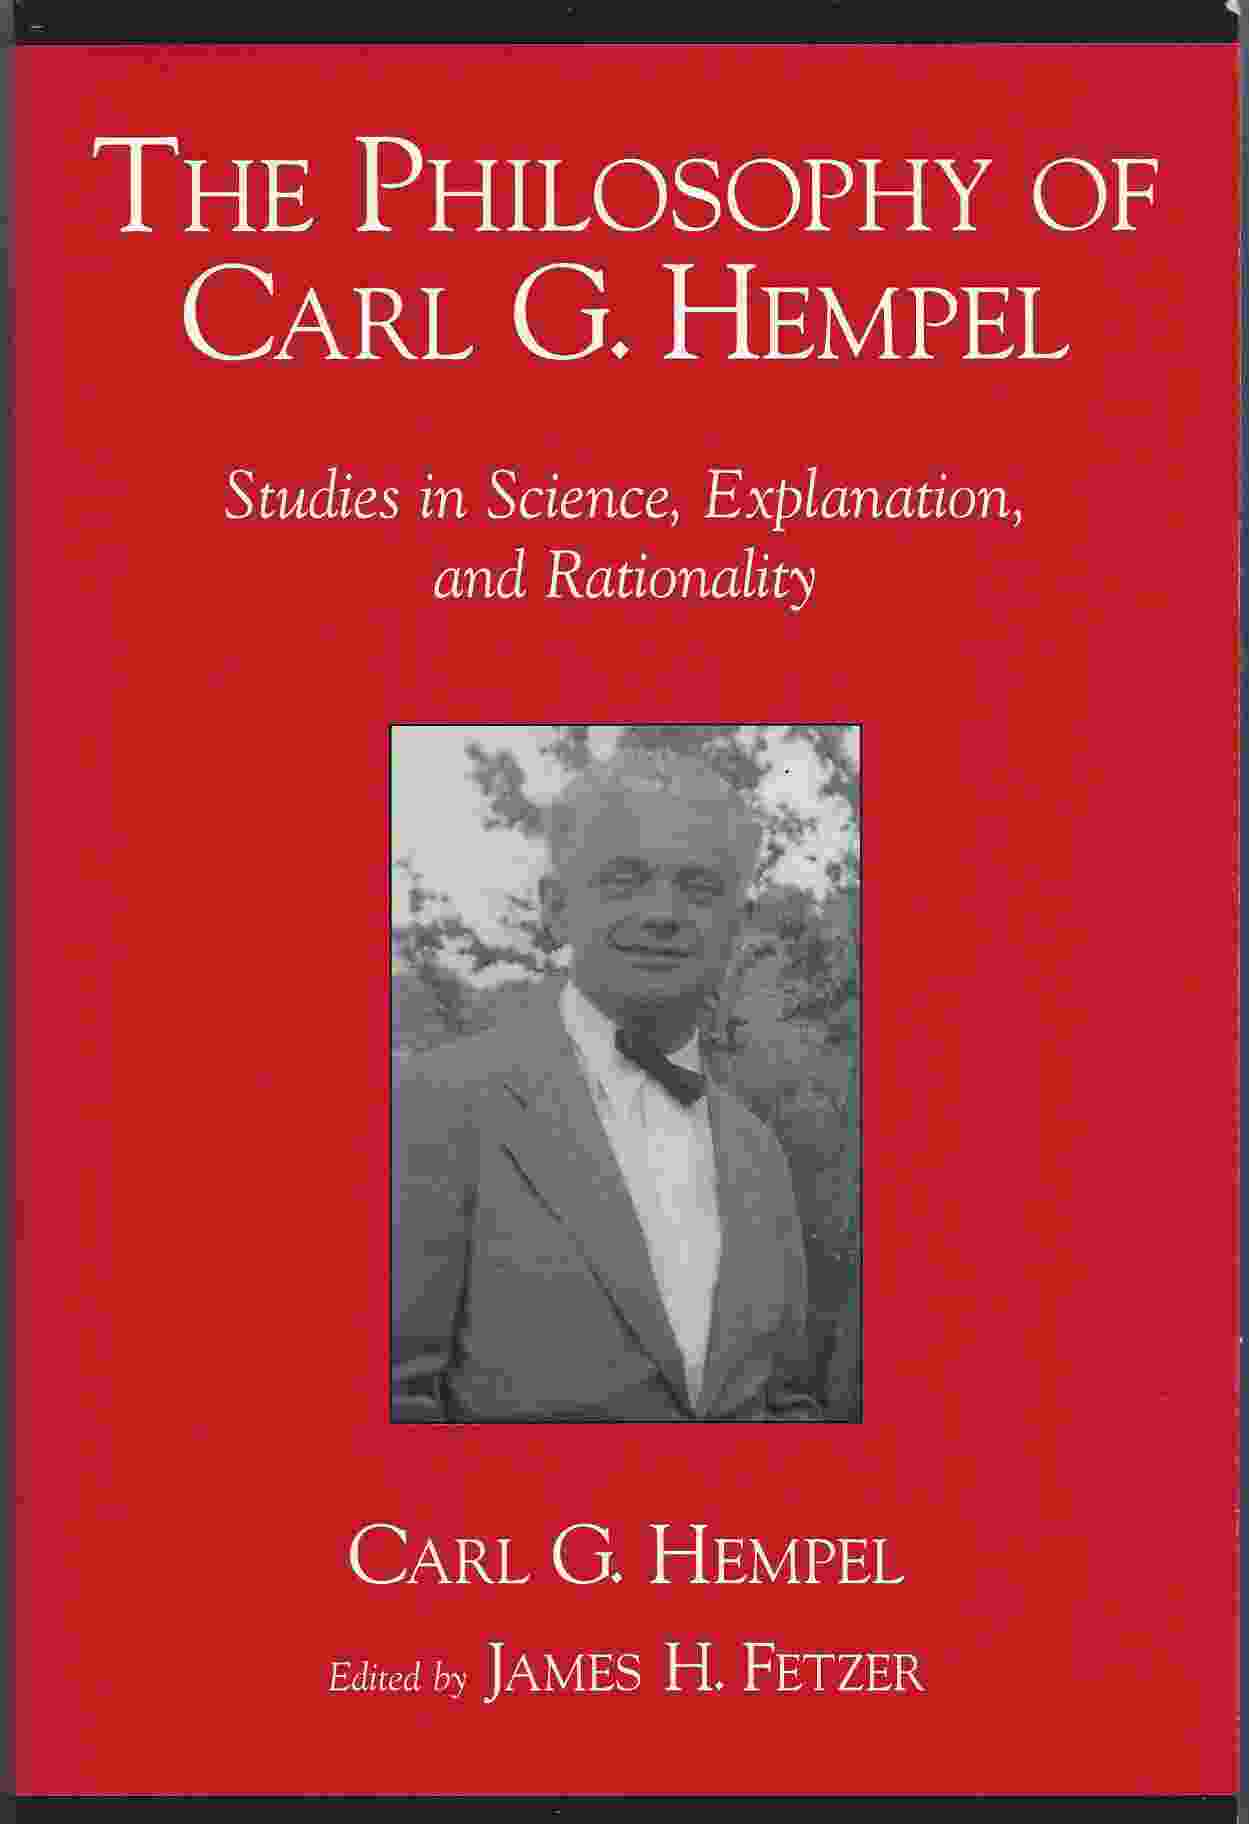 Image for THE PHILOSOPHY OF CARL G. HEMPEL  Studies in Science, Explanation, and Rationality